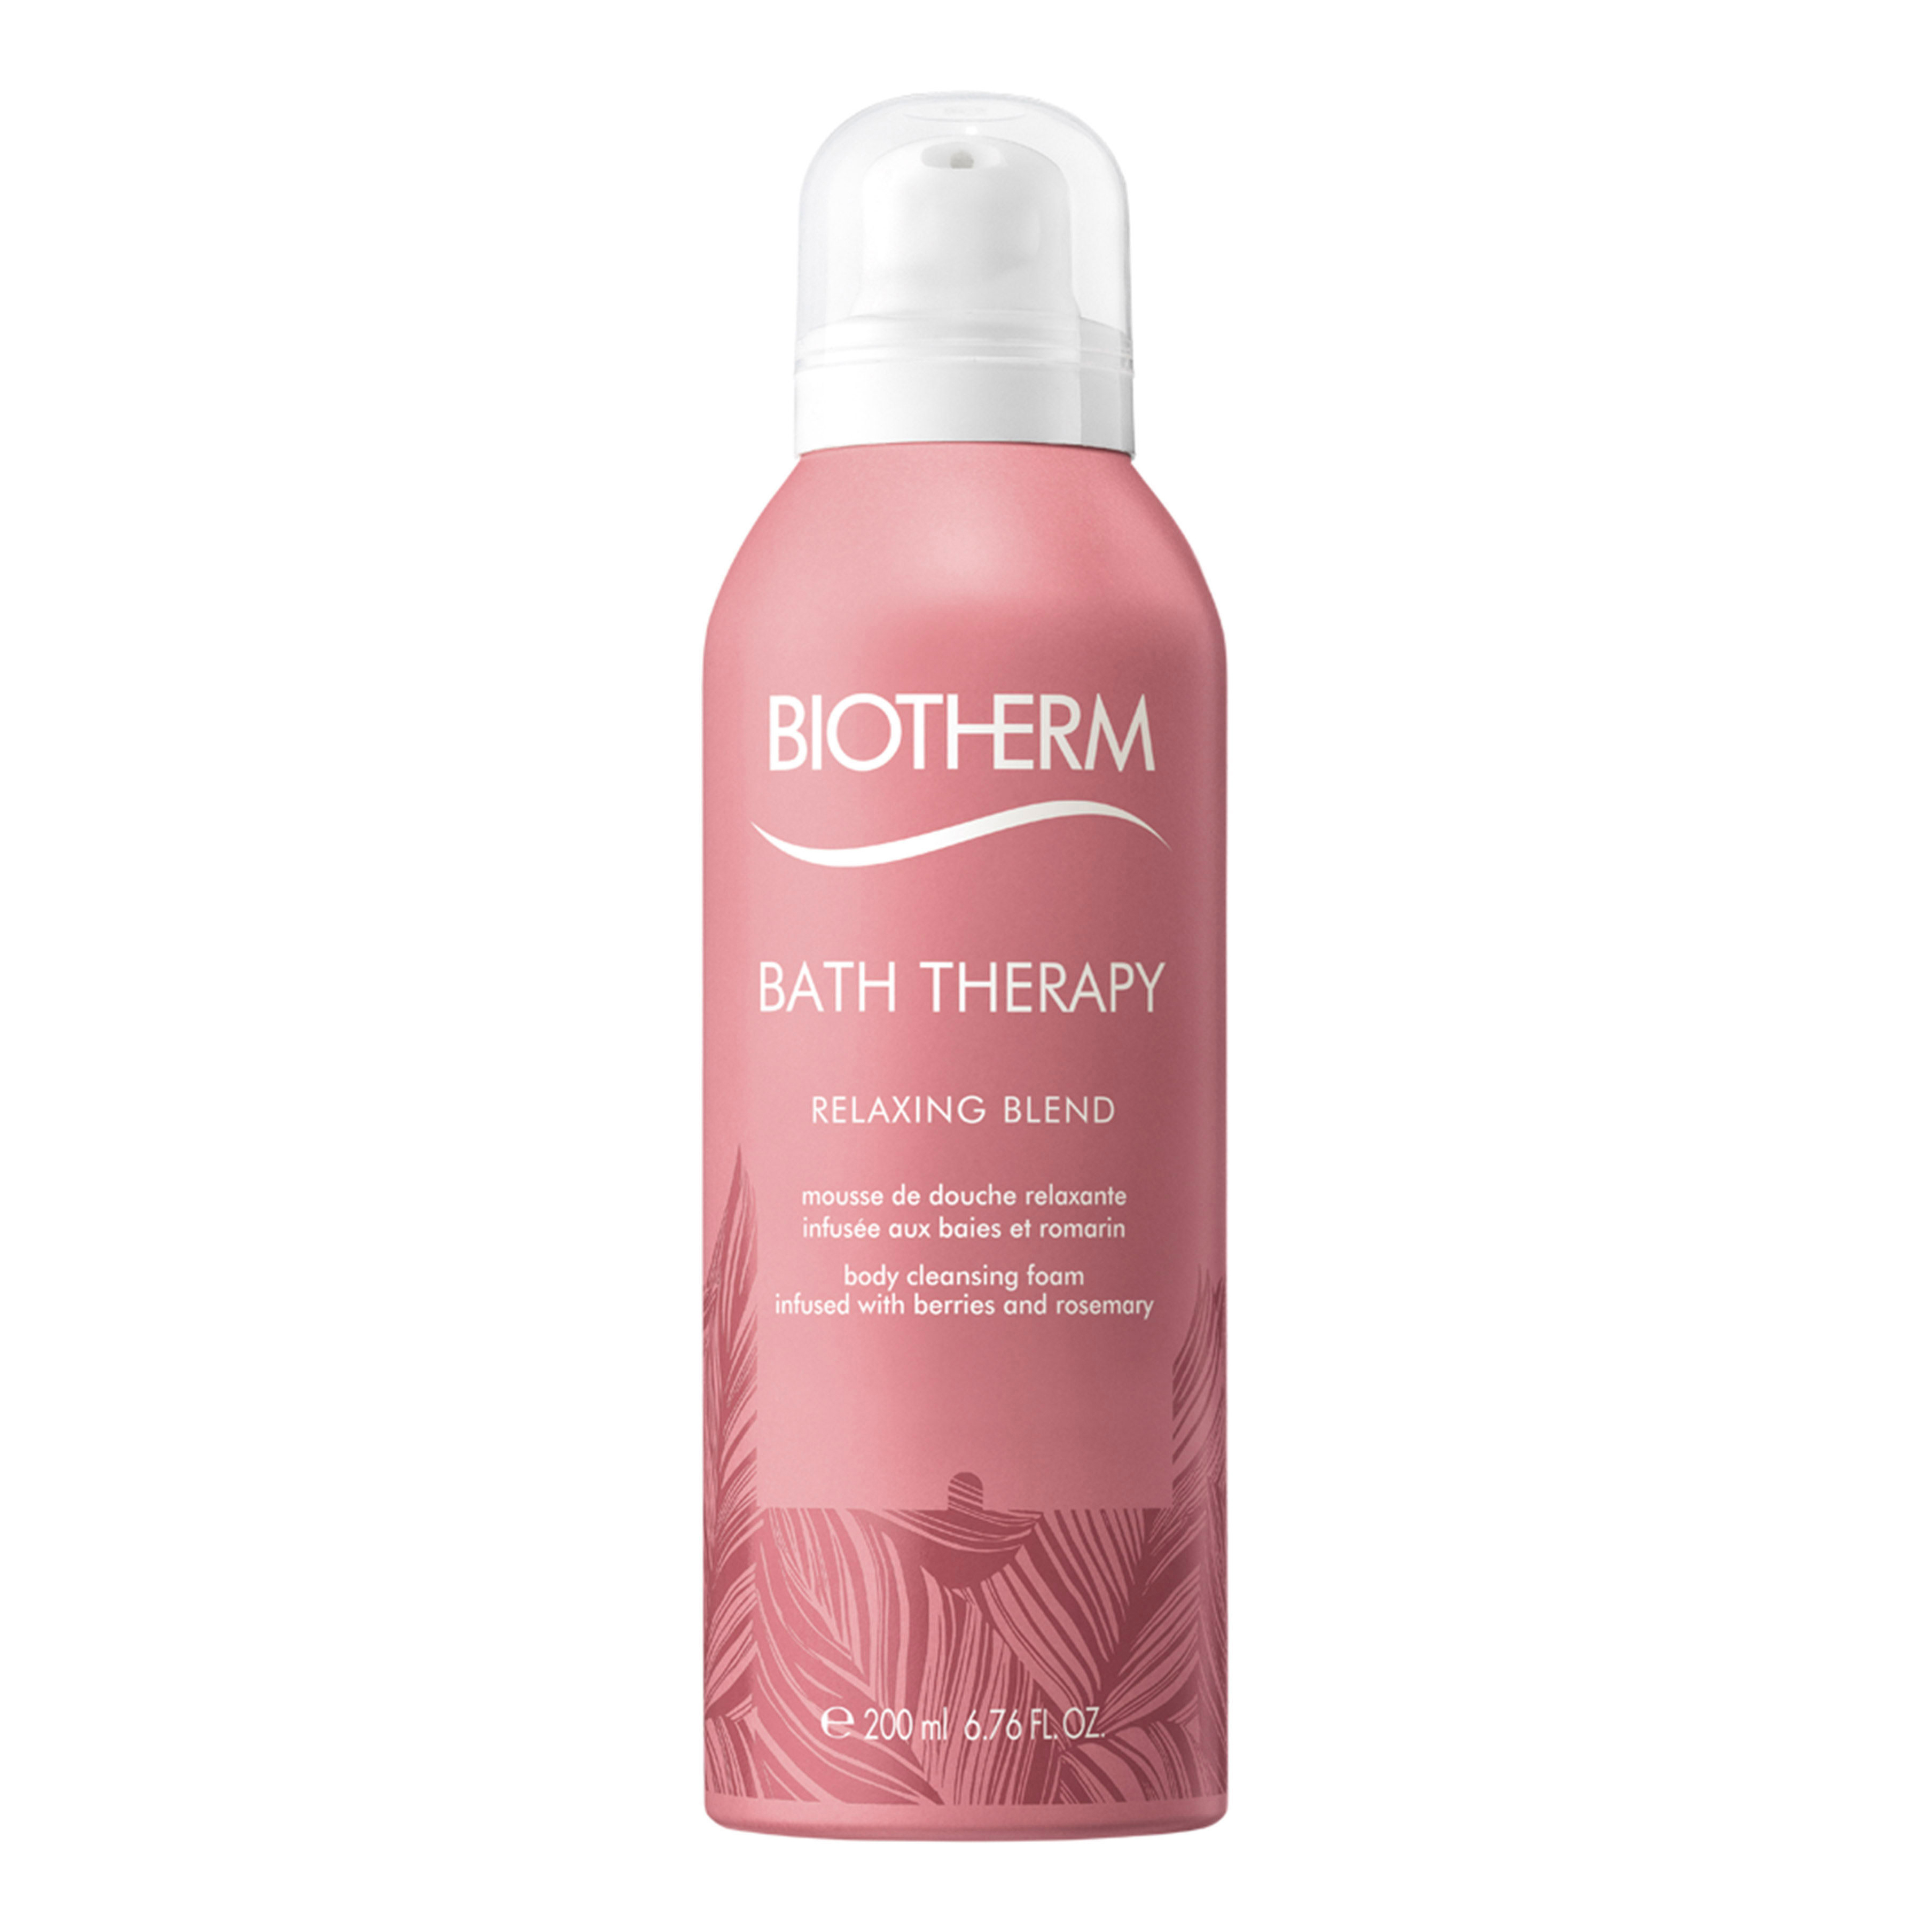 Bath Therapy. BIOTHERM Bath Therapy Relaxing Blend Cleasing Foam 200ml